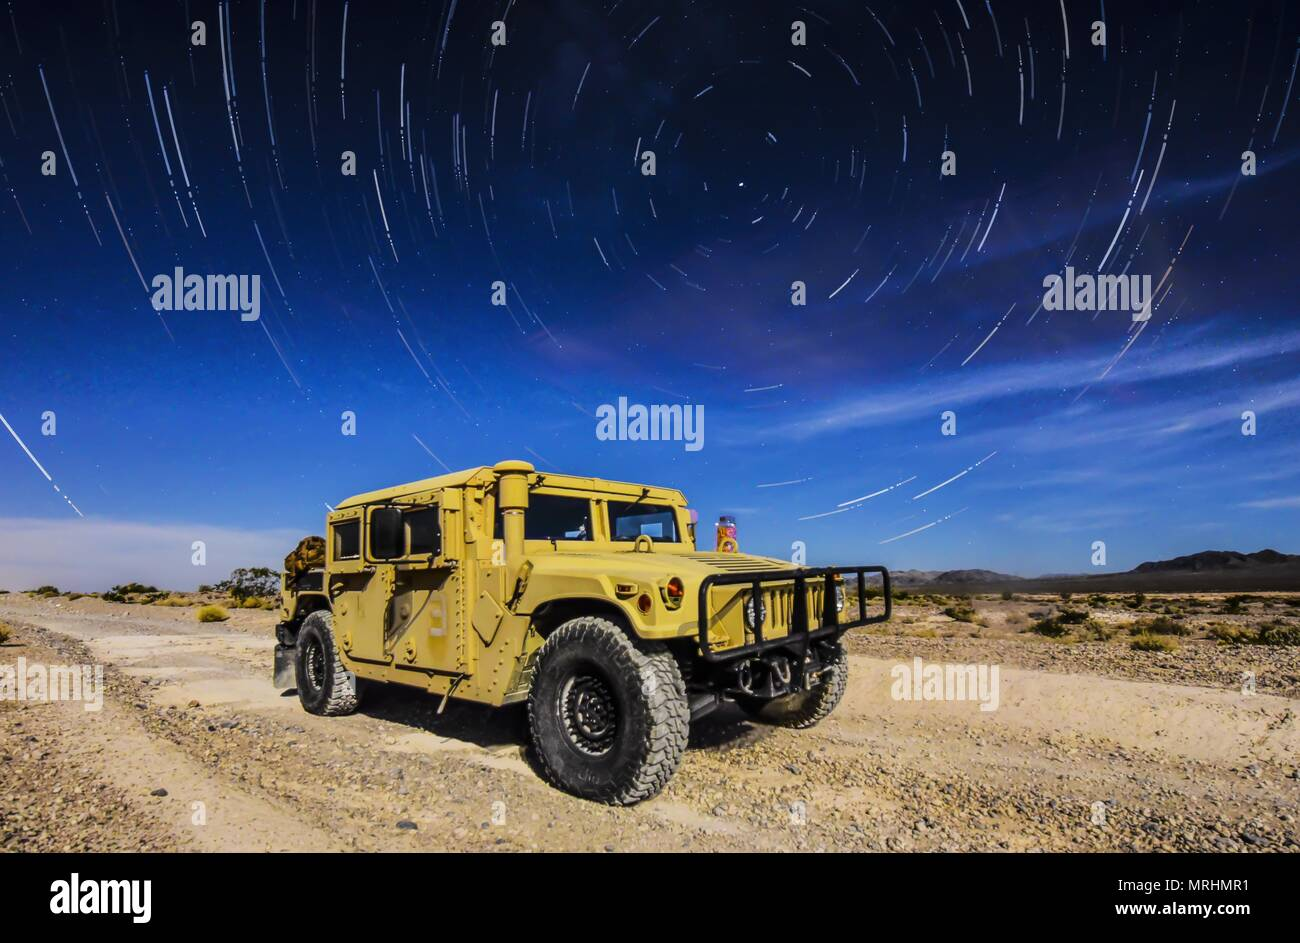 A 99th Civil Engineer Squadron explosive ordnance disposal team Humvee sits under the stars during a training exercise at the Nevada Test and Training Range June 7, 2017. The Humvee is the military's premier light armored truck and has multiple modifications that best suits each unit's specific needs. (U.S. Air Force photo illustration by Airman 1st Class Andrew D. Sarver/Released) Stock Photo